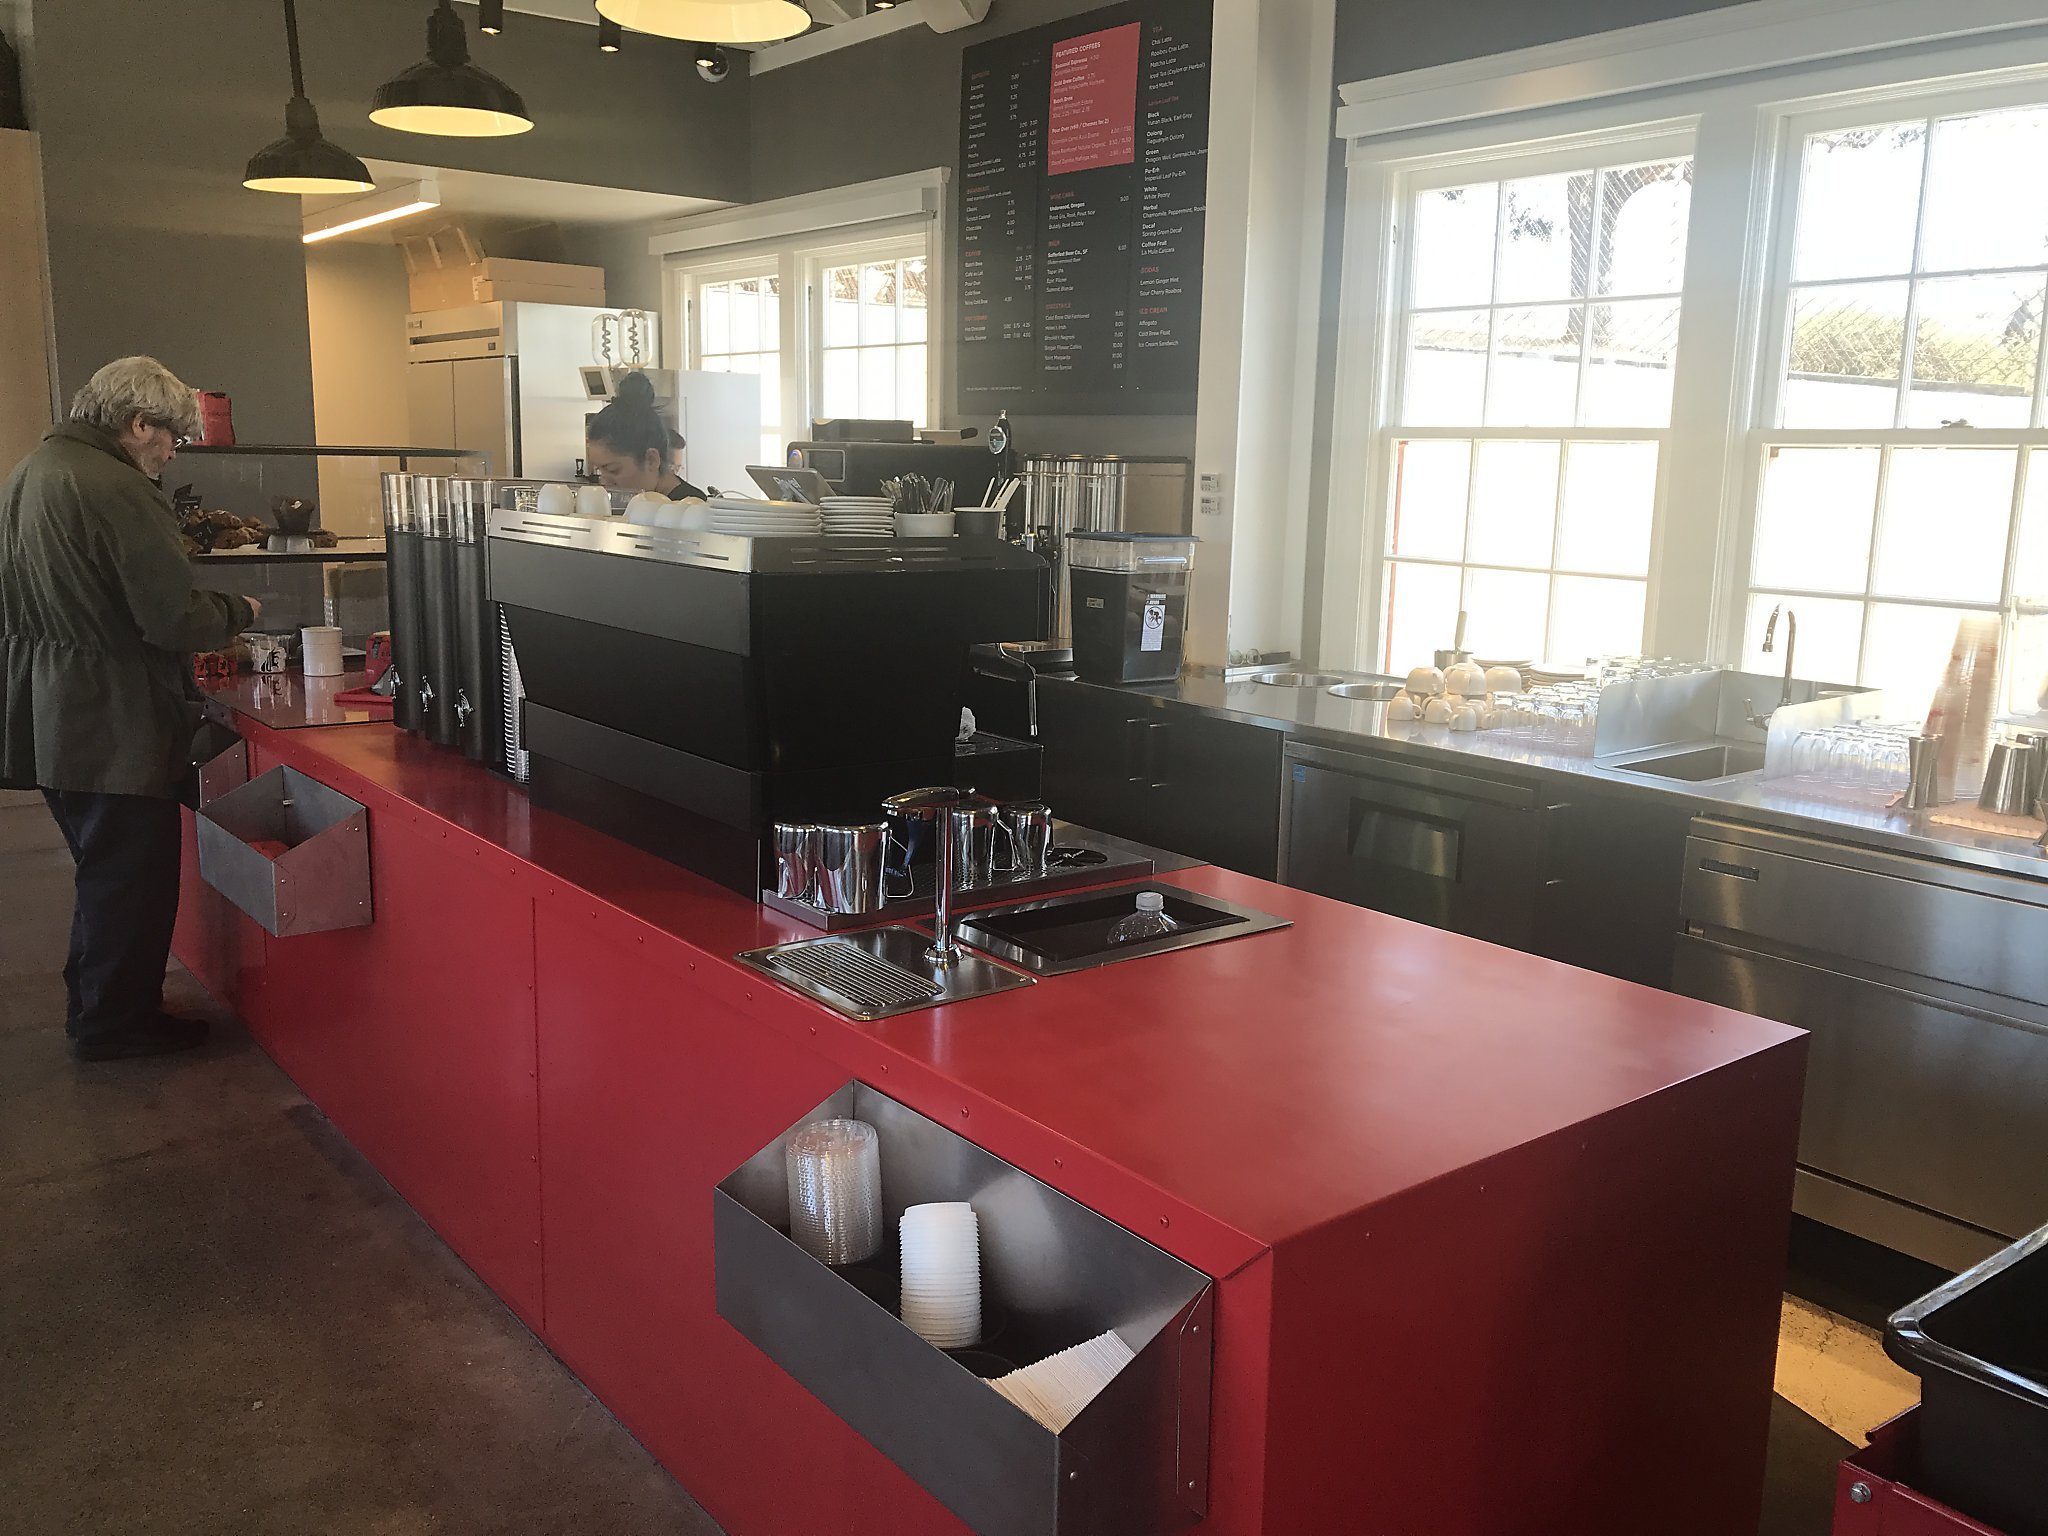 Equator Brings Coffee Cocktails And New Brewing Technology To Fort Mason San Francisco Chronicle